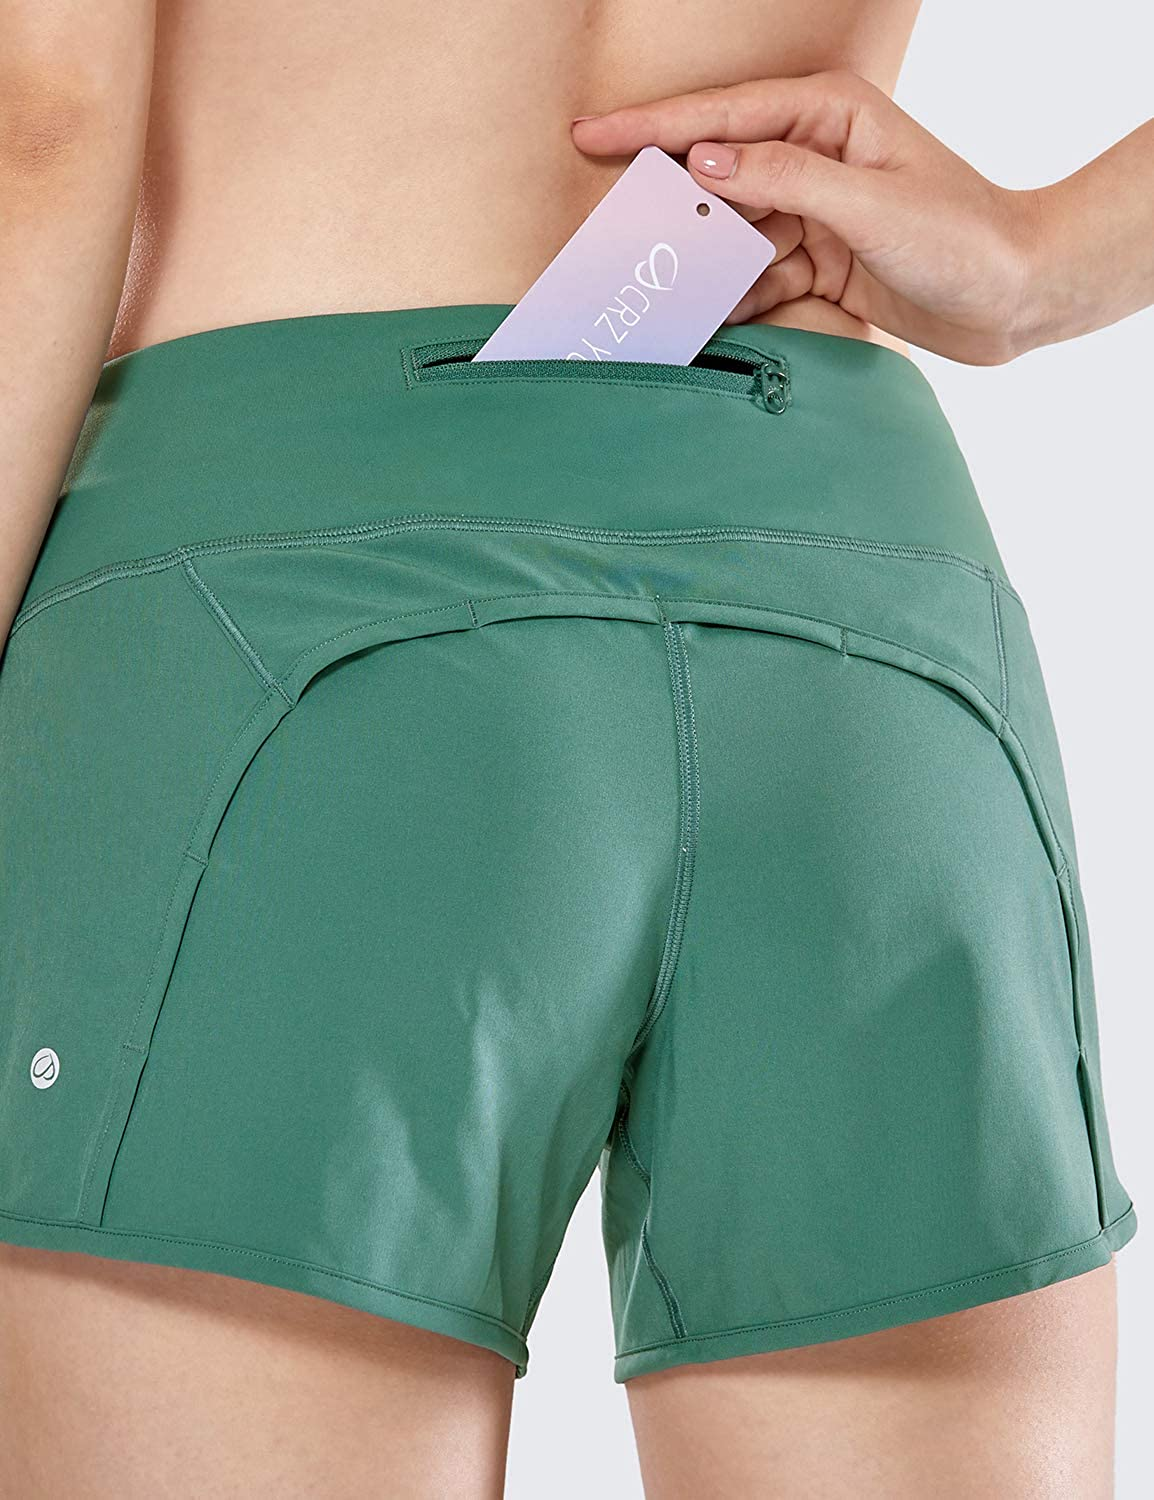 4 Inches CRZ YOGA Womens Quick-Dry Athletic Sports Running Workout Shorts with Zip Pocket